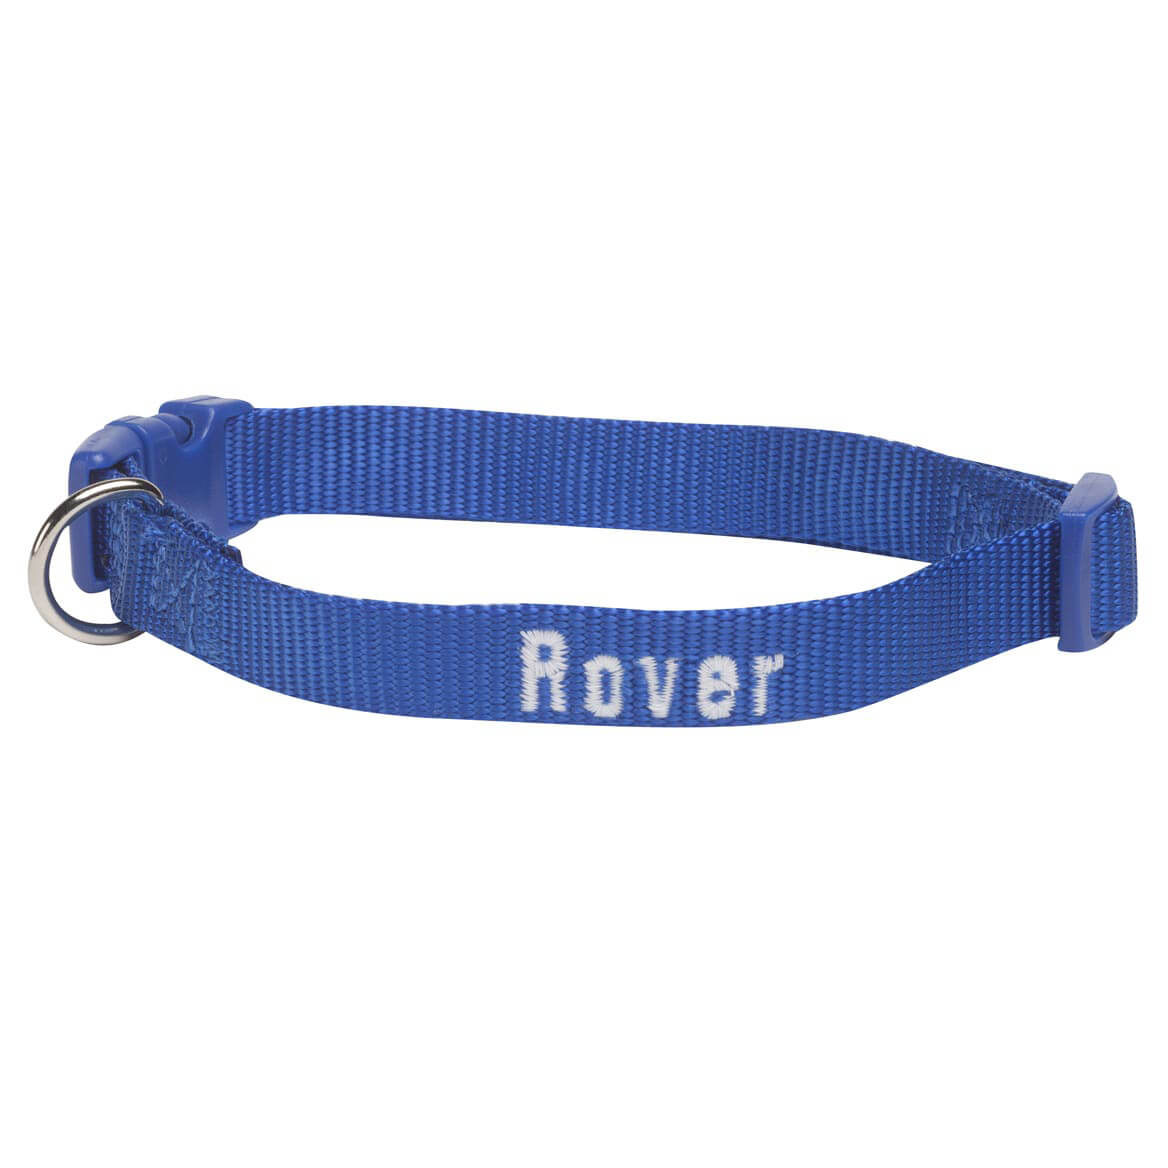 "Personalized 14-20"" Dog Collar"